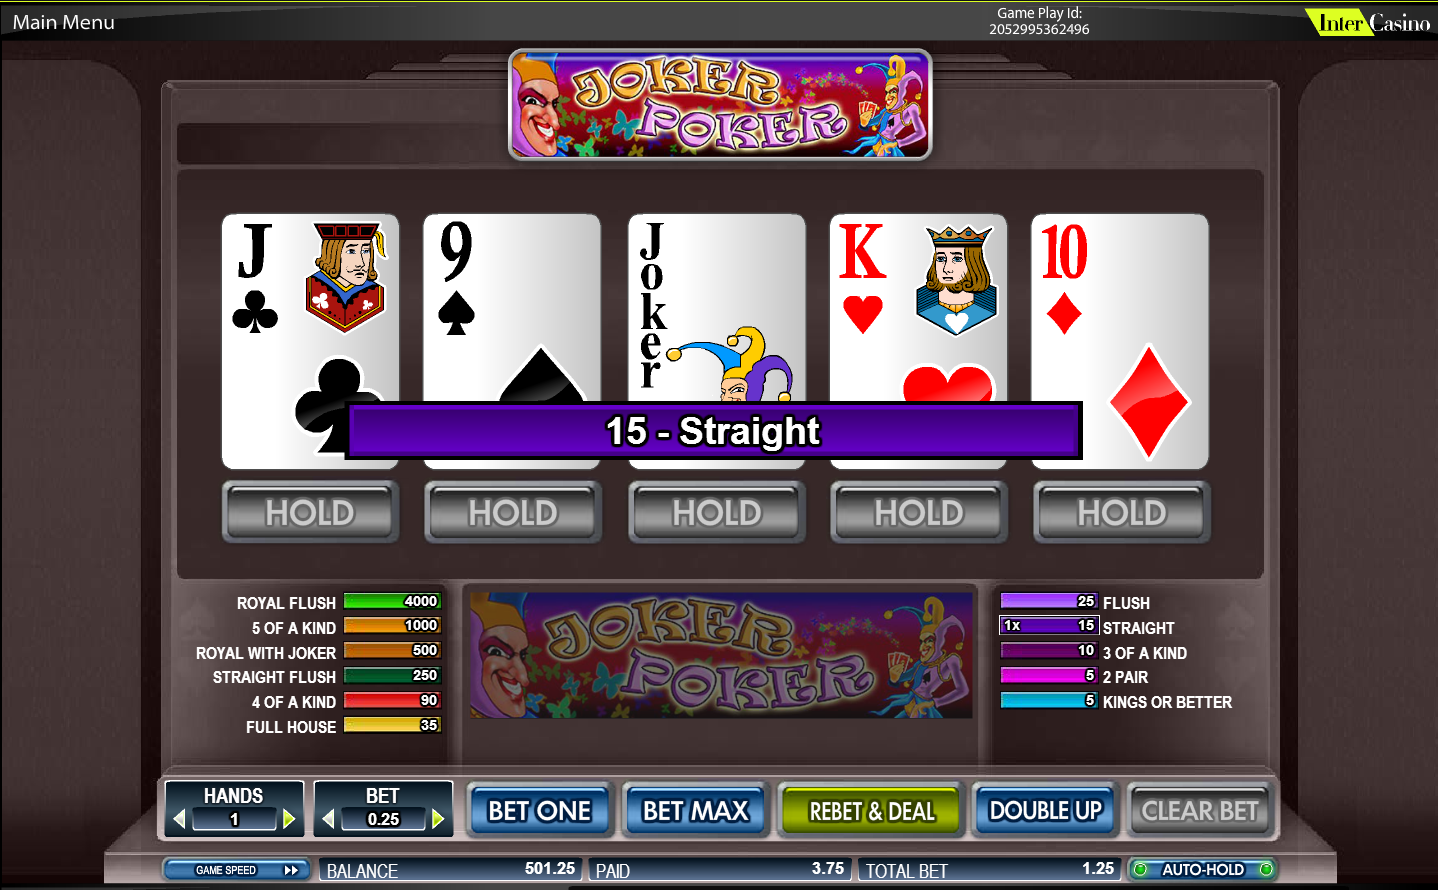 Play 50 Line Joker Poker Video Poker Online at Casino.com